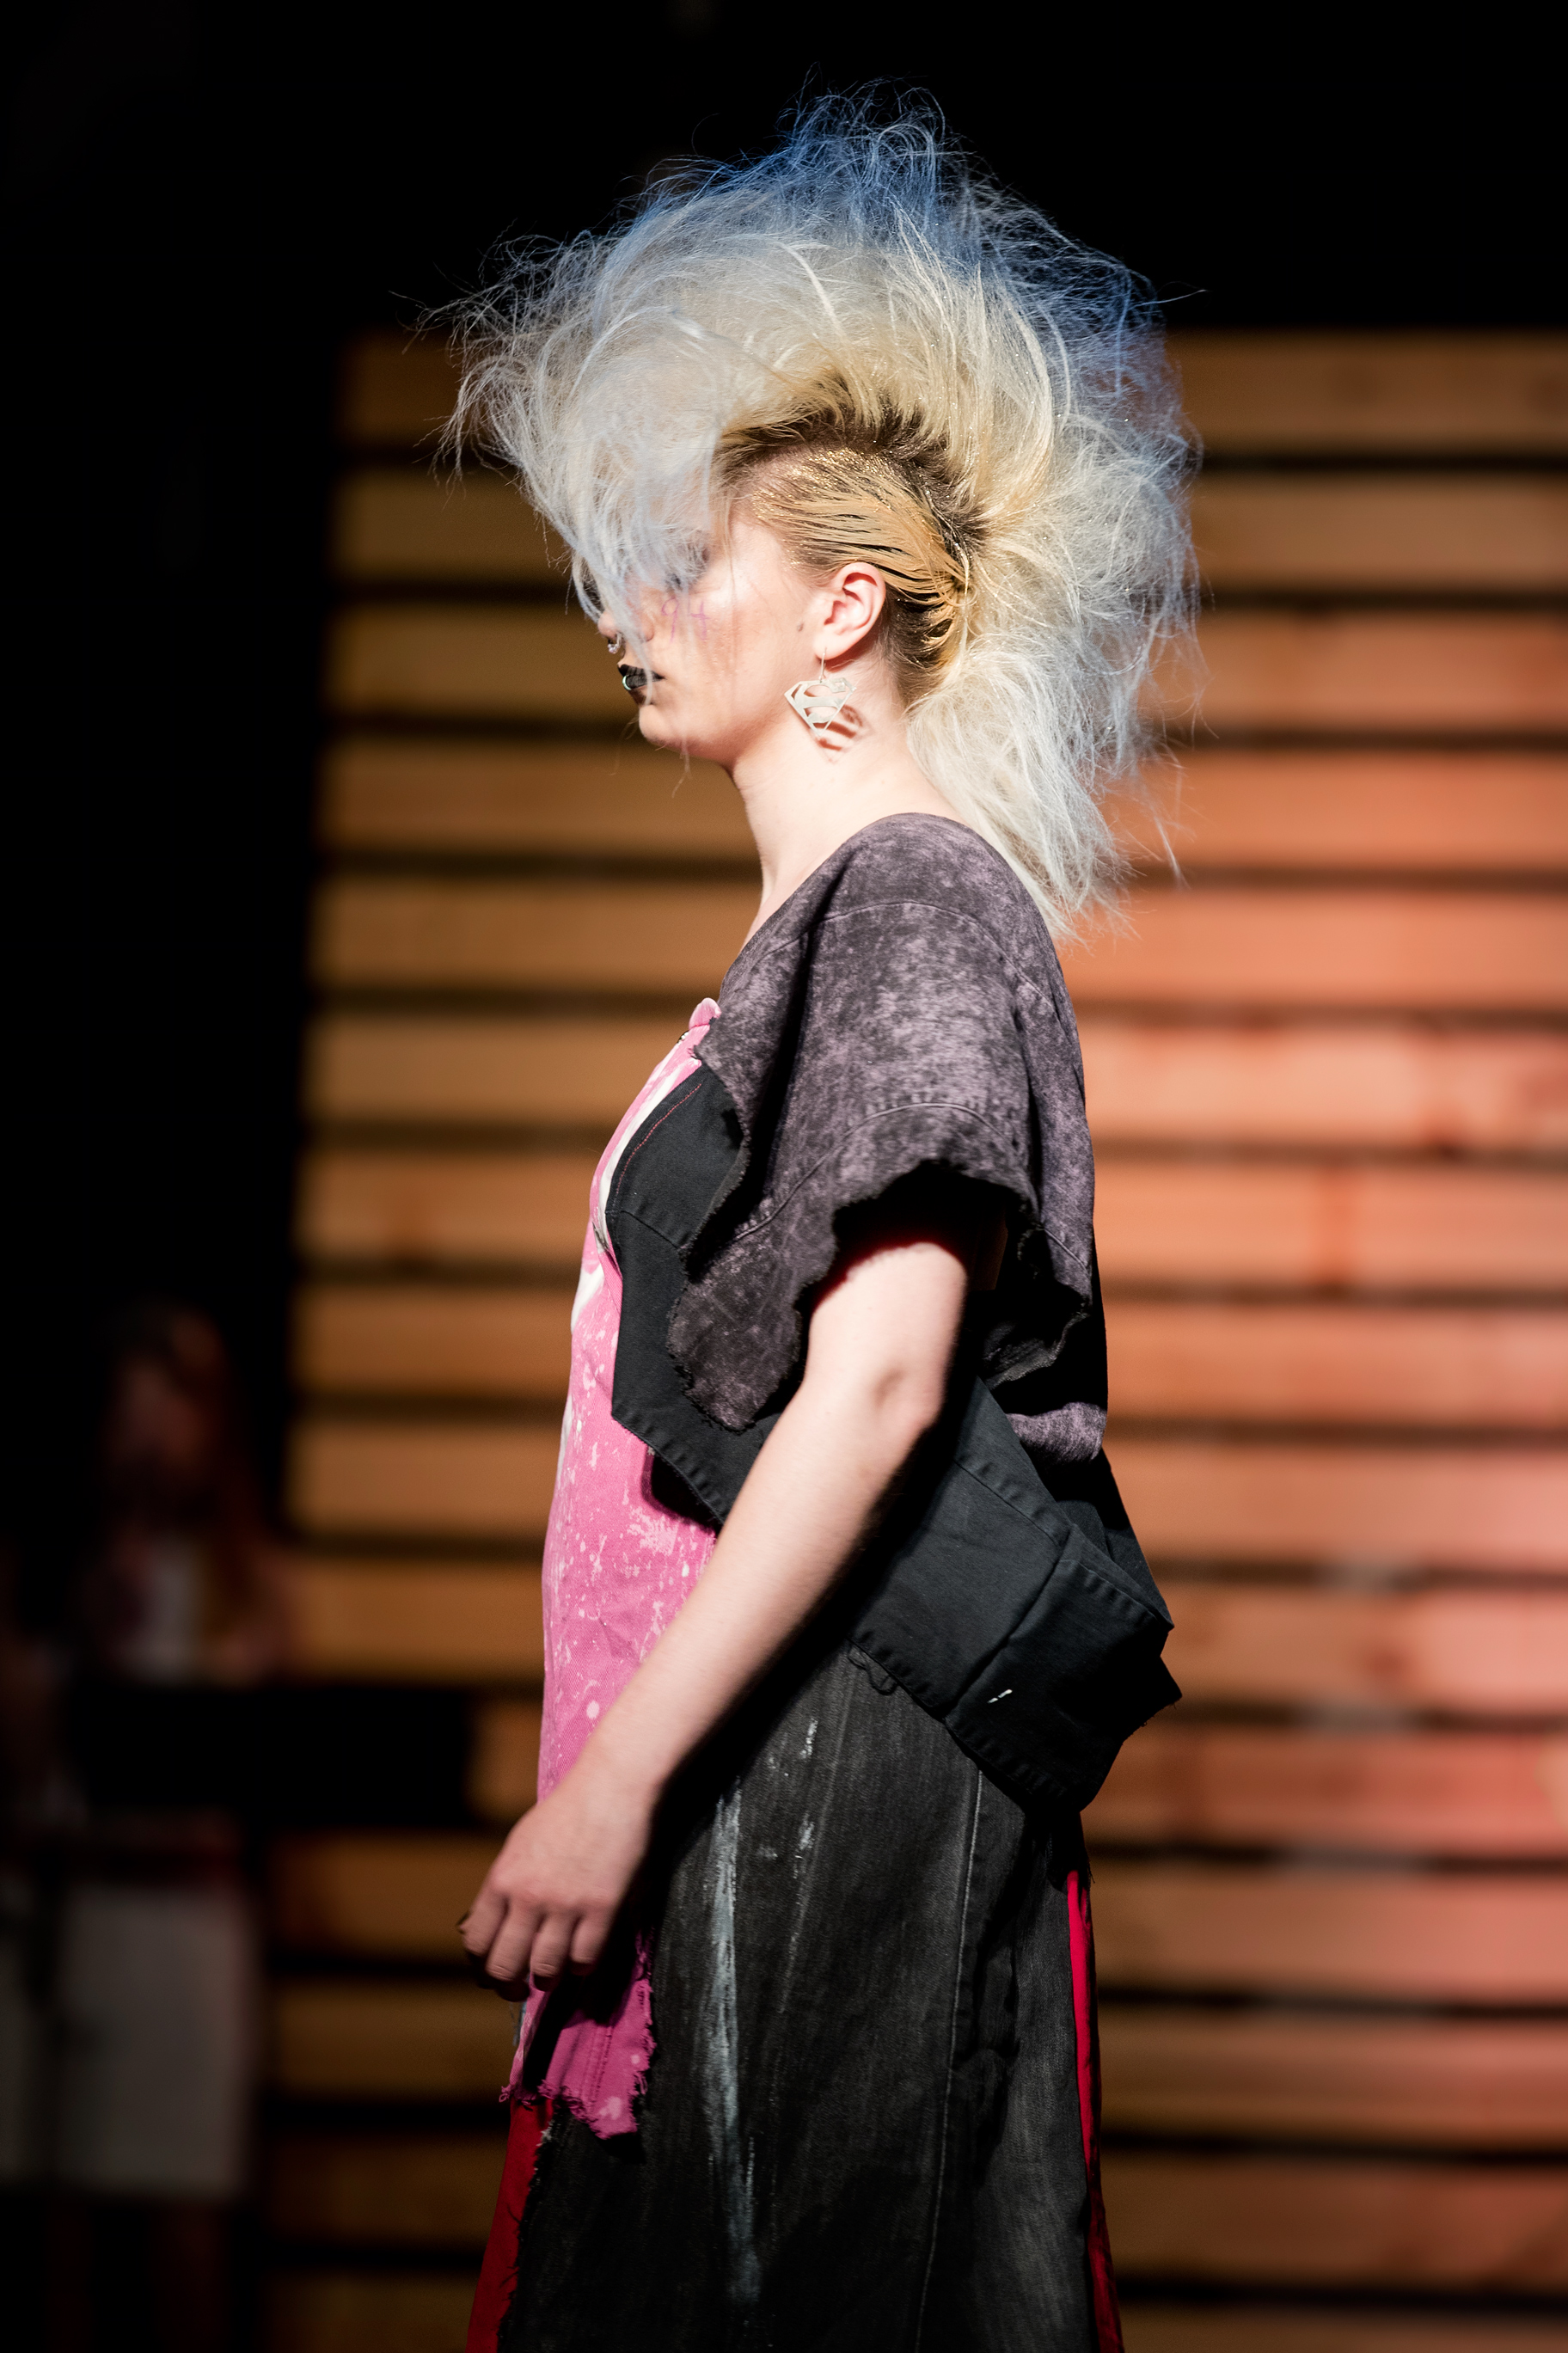 Mission Wear Upcycled Patchwork Fashion Show - 079.jpg